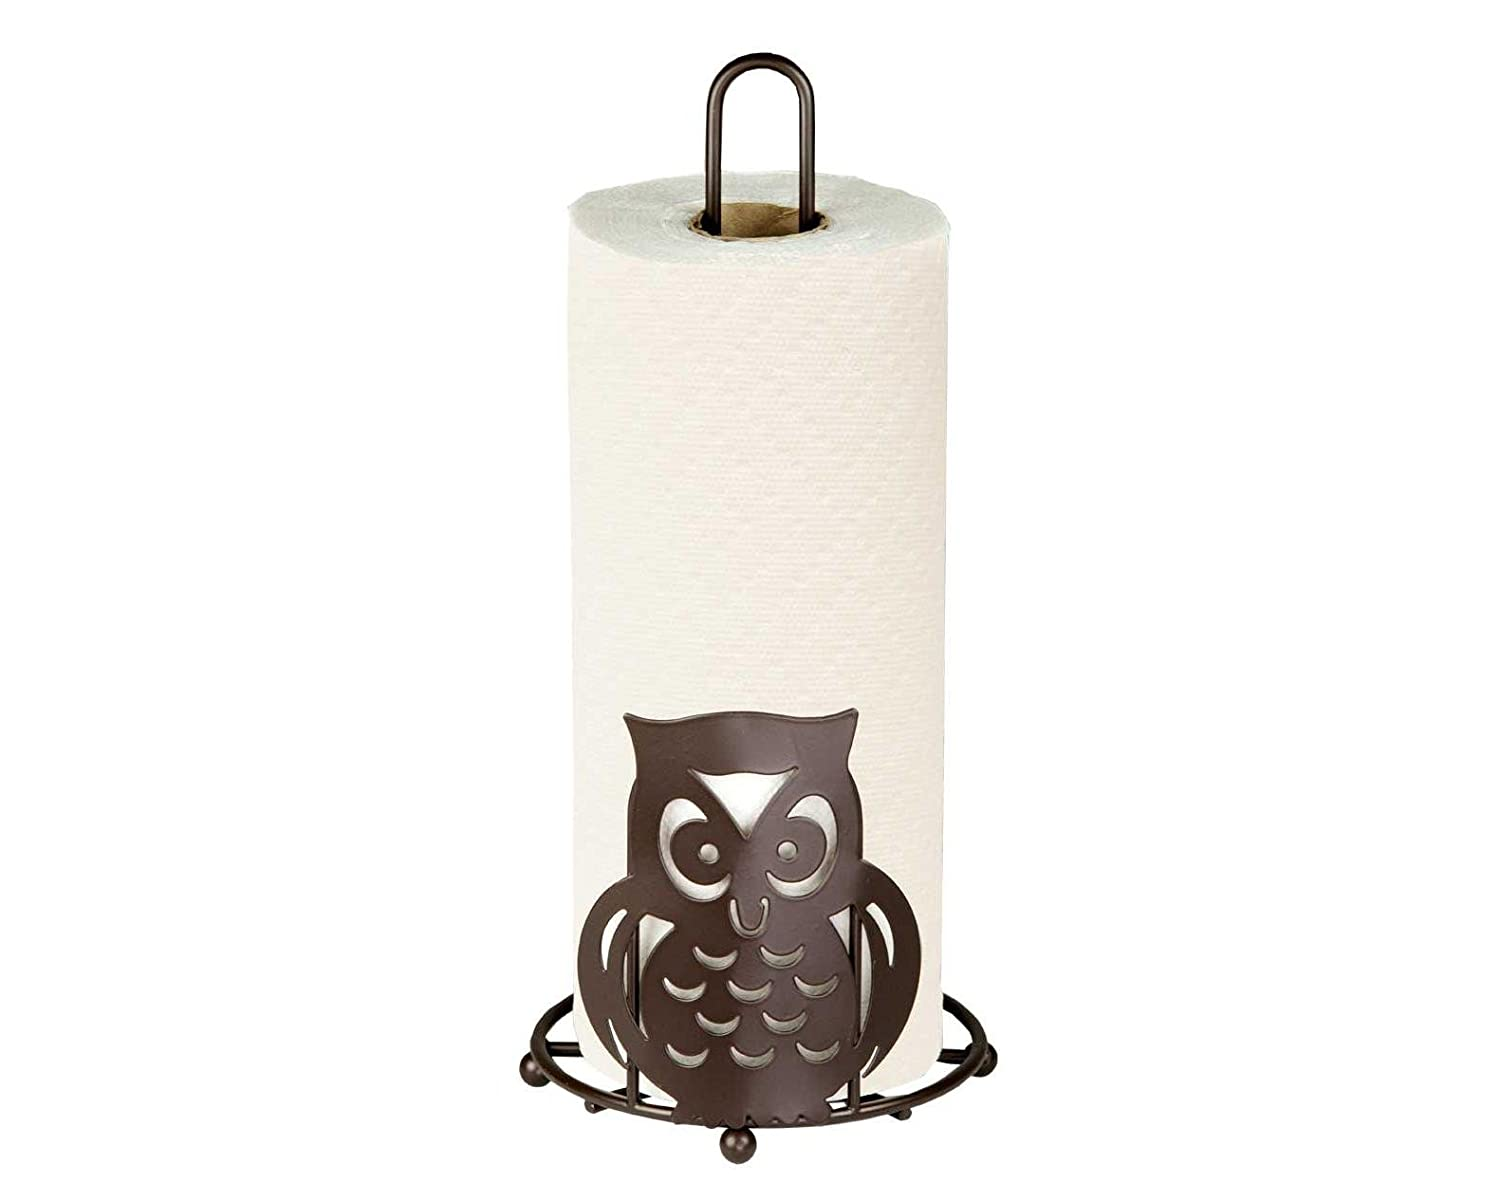 Home Basics Owl Paper Towel Holder, Bronze HDS Trading Corp. PH01781